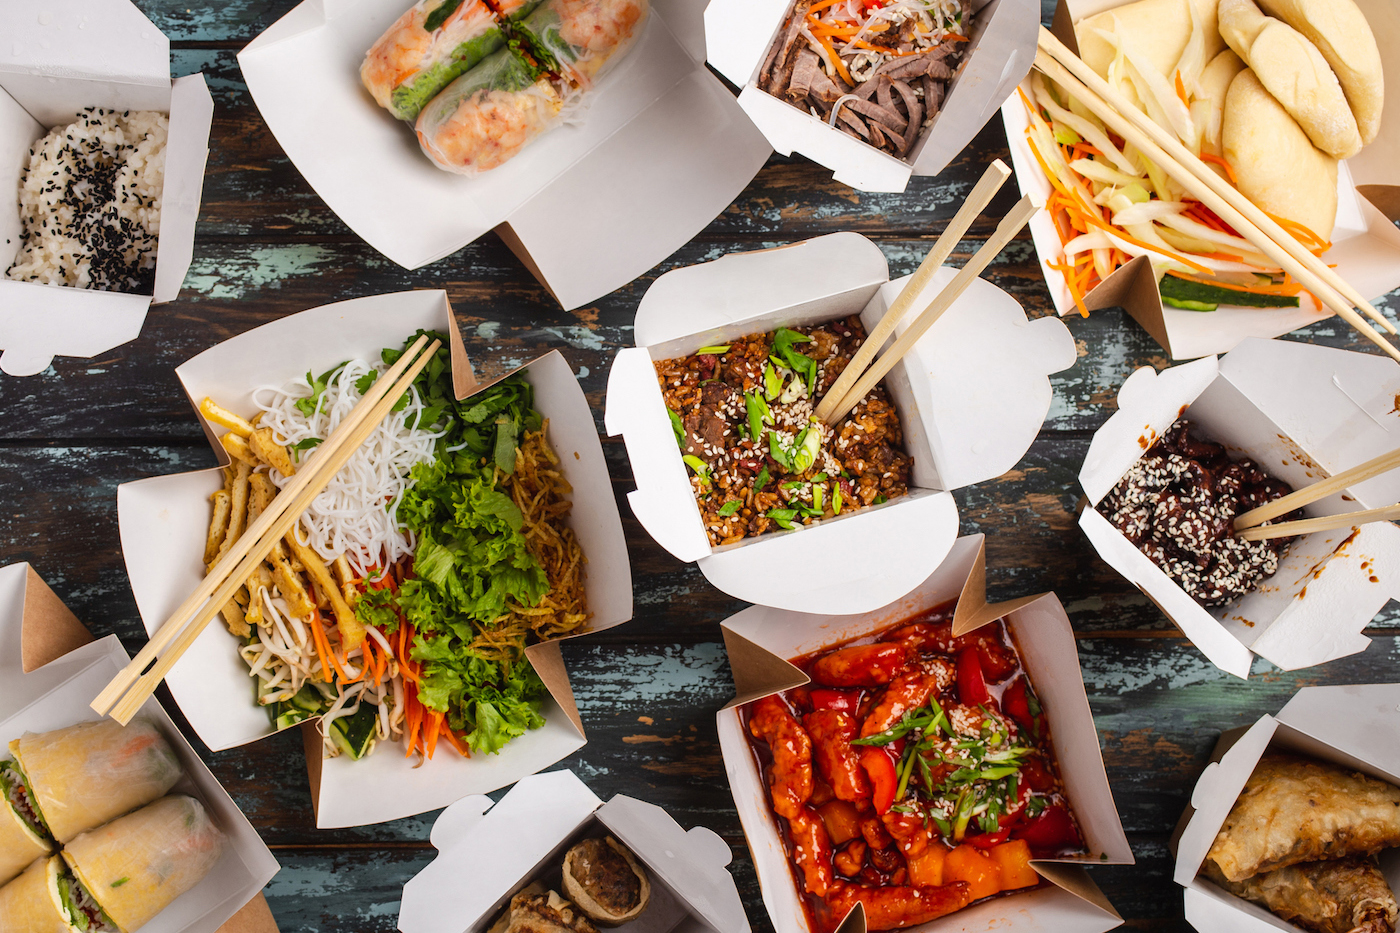 Ordering Food From Your Restaurant's Website – Why Not?